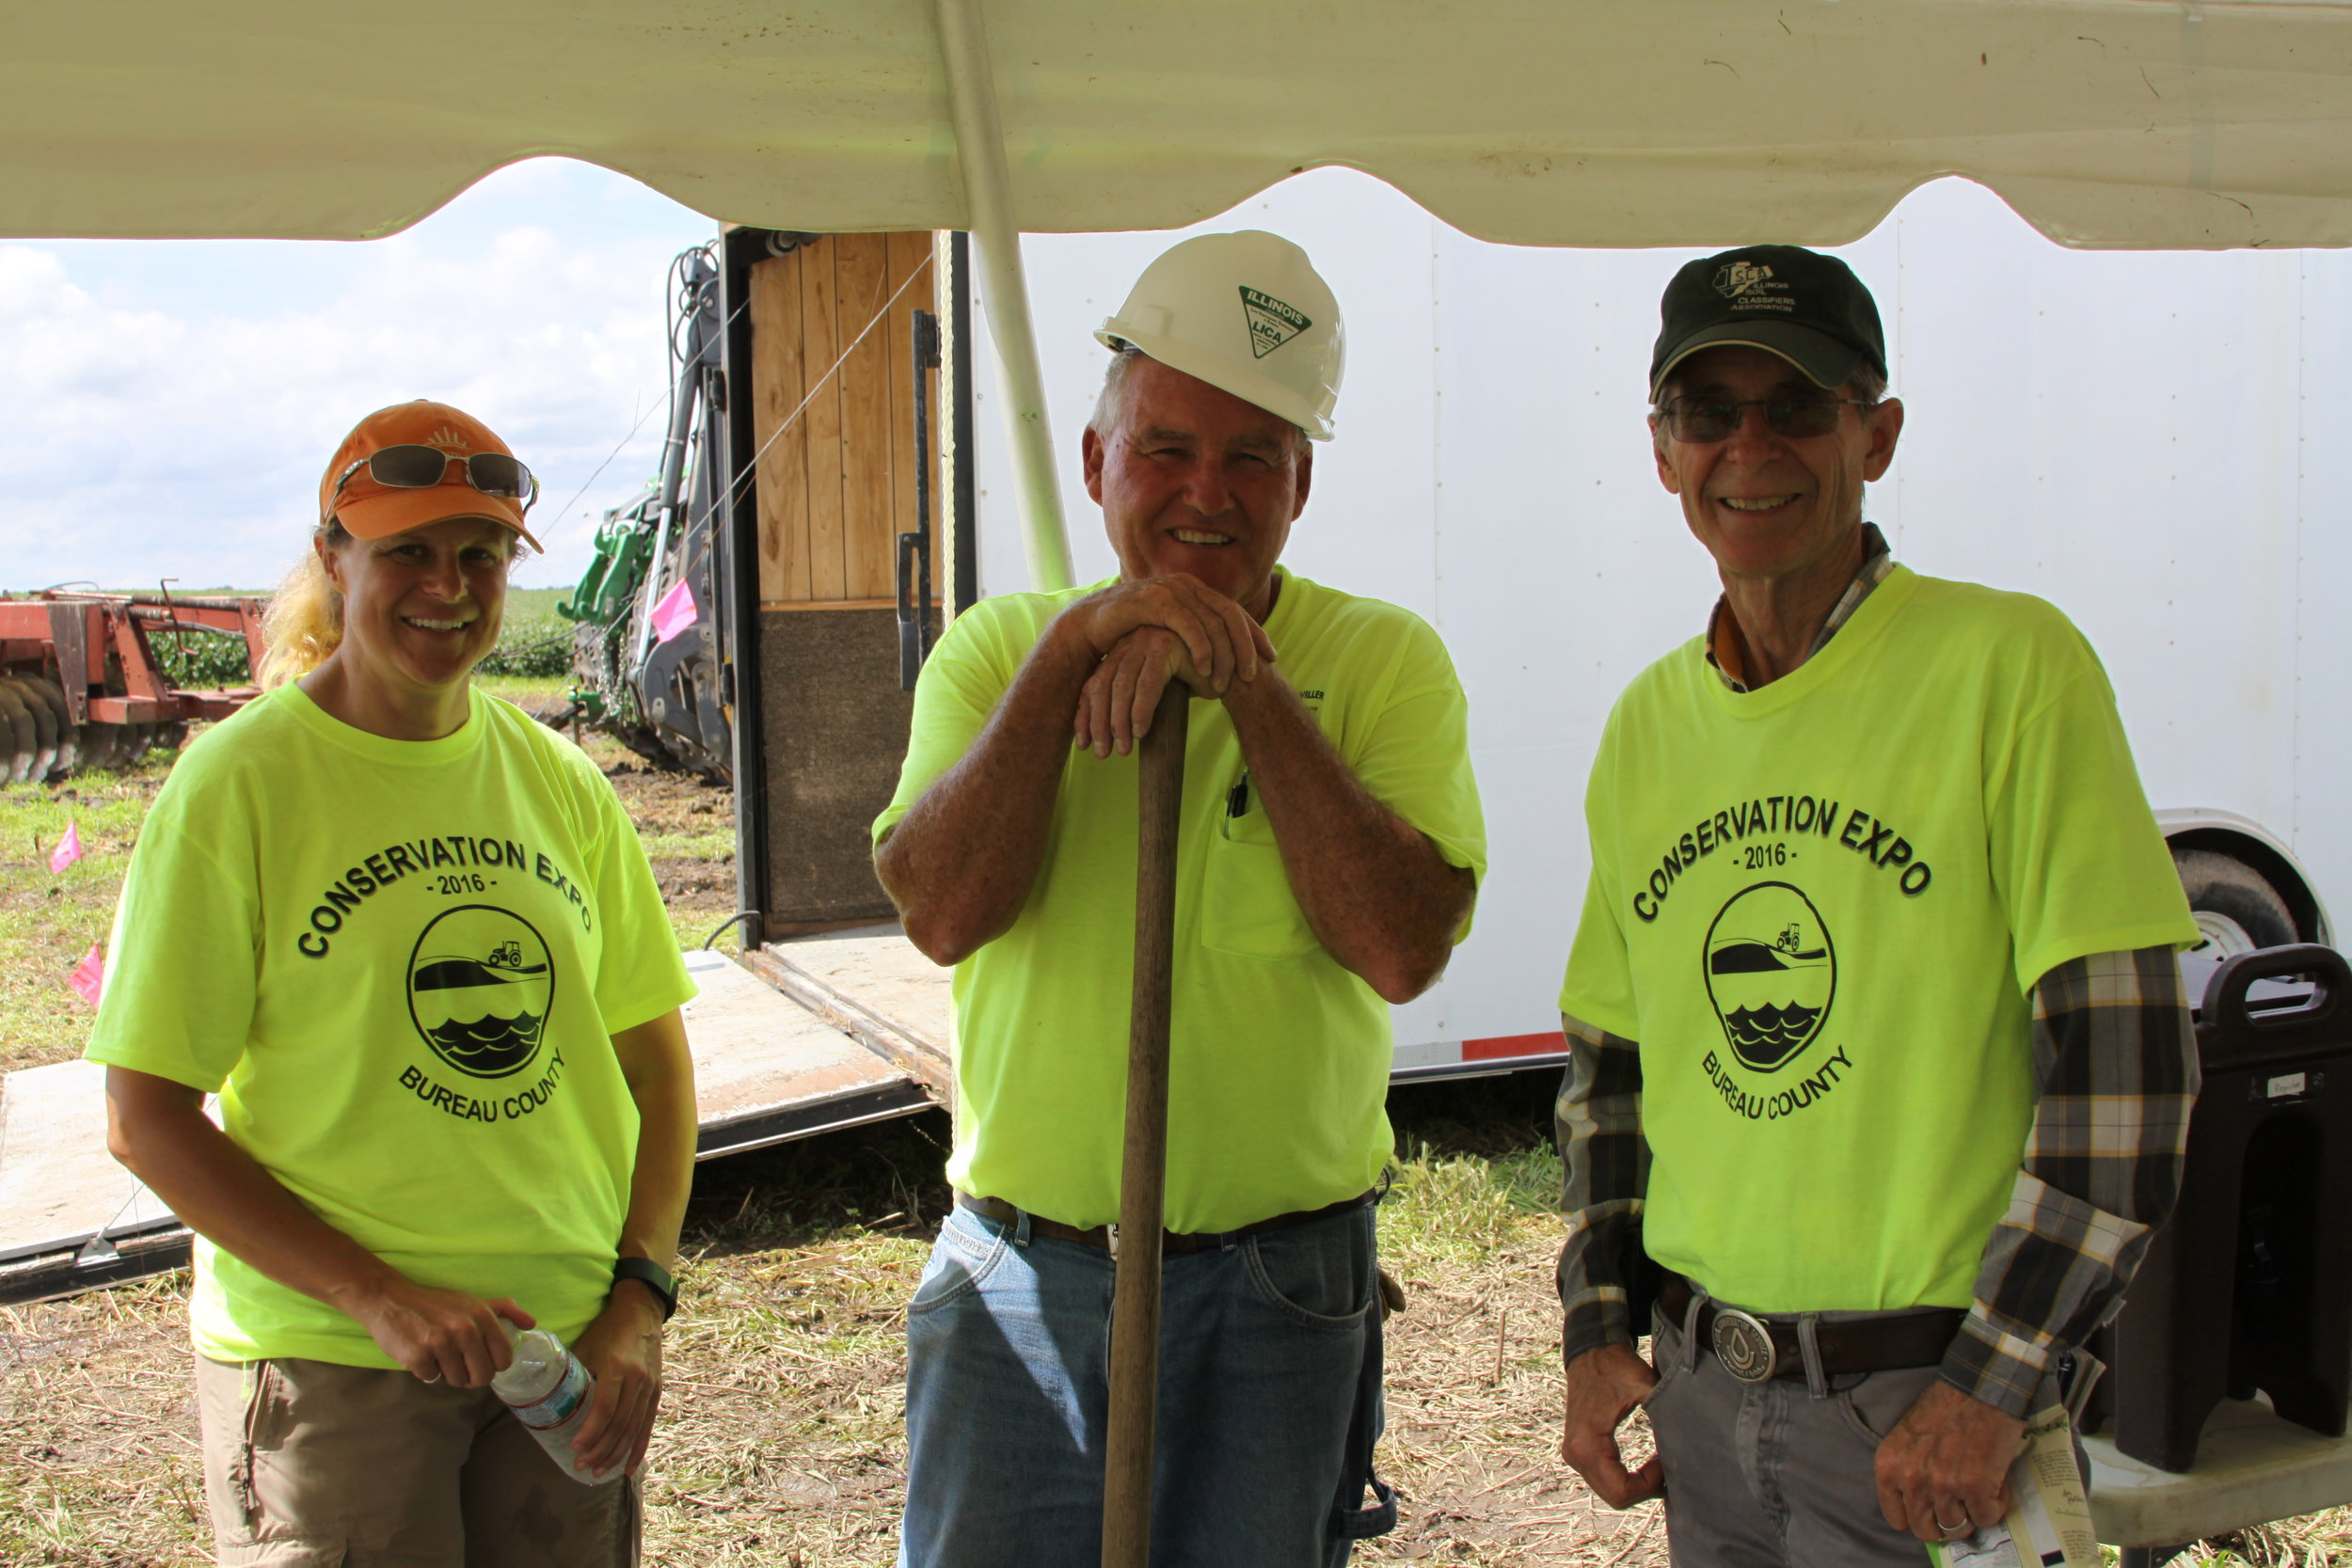 From left to right: TWI Senior Environmental Engineer Dr. Jill Kostel, ILICA contractor Wes Litwiller, and soil scientist Steve Zwicker during wetland construction on Bonucci Farms.